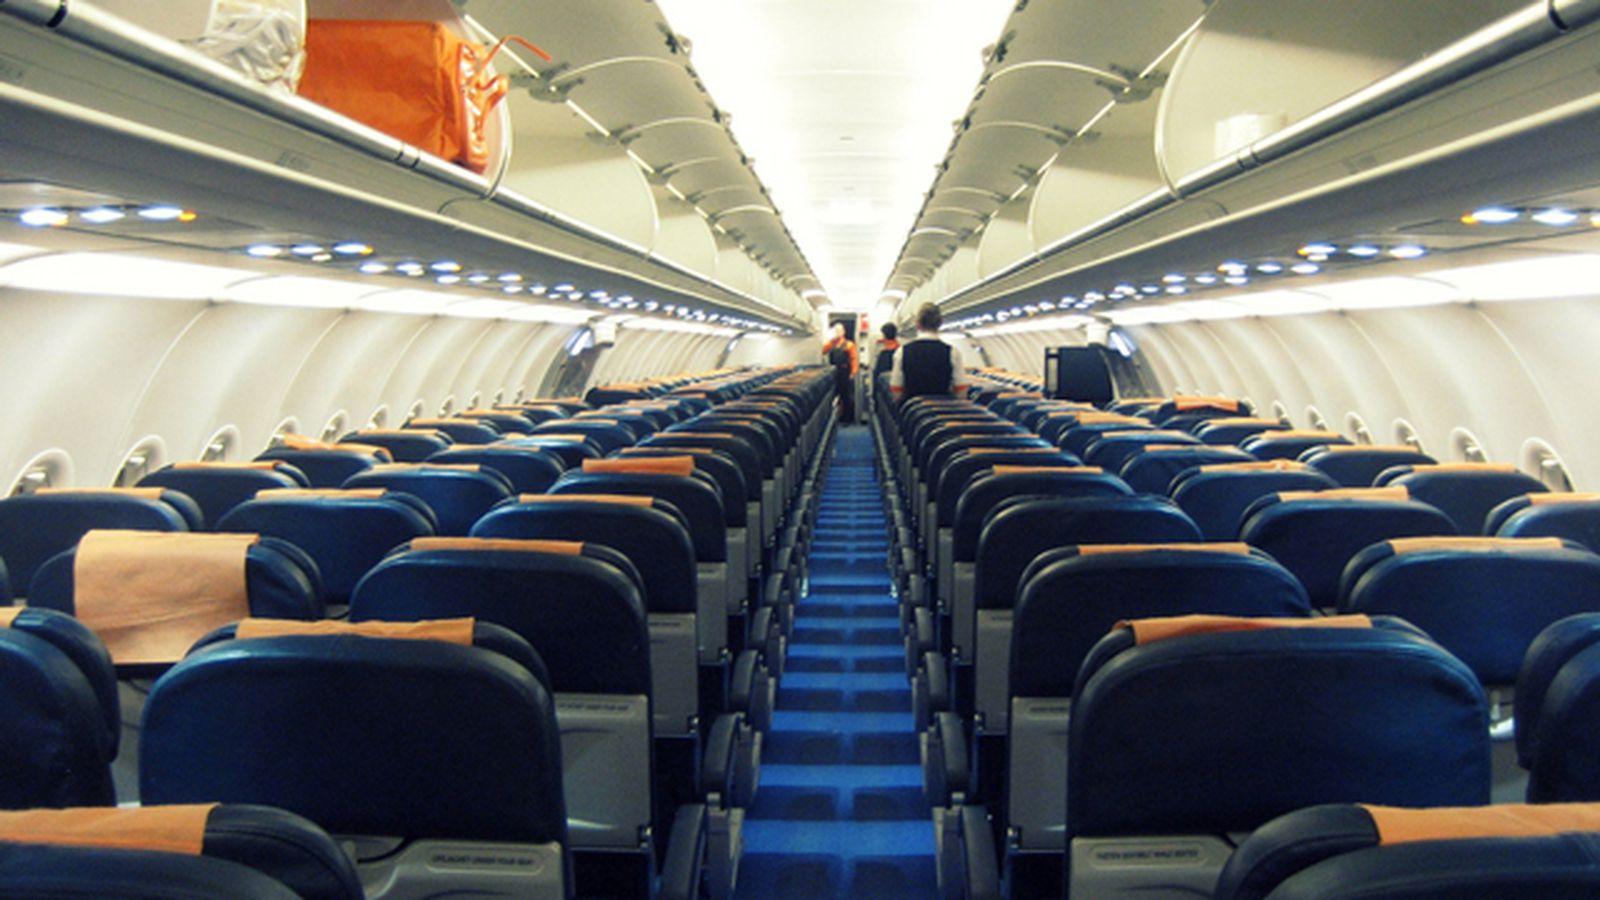 UK follows US in banning electronic devices on flights from some Middle Eastern countries